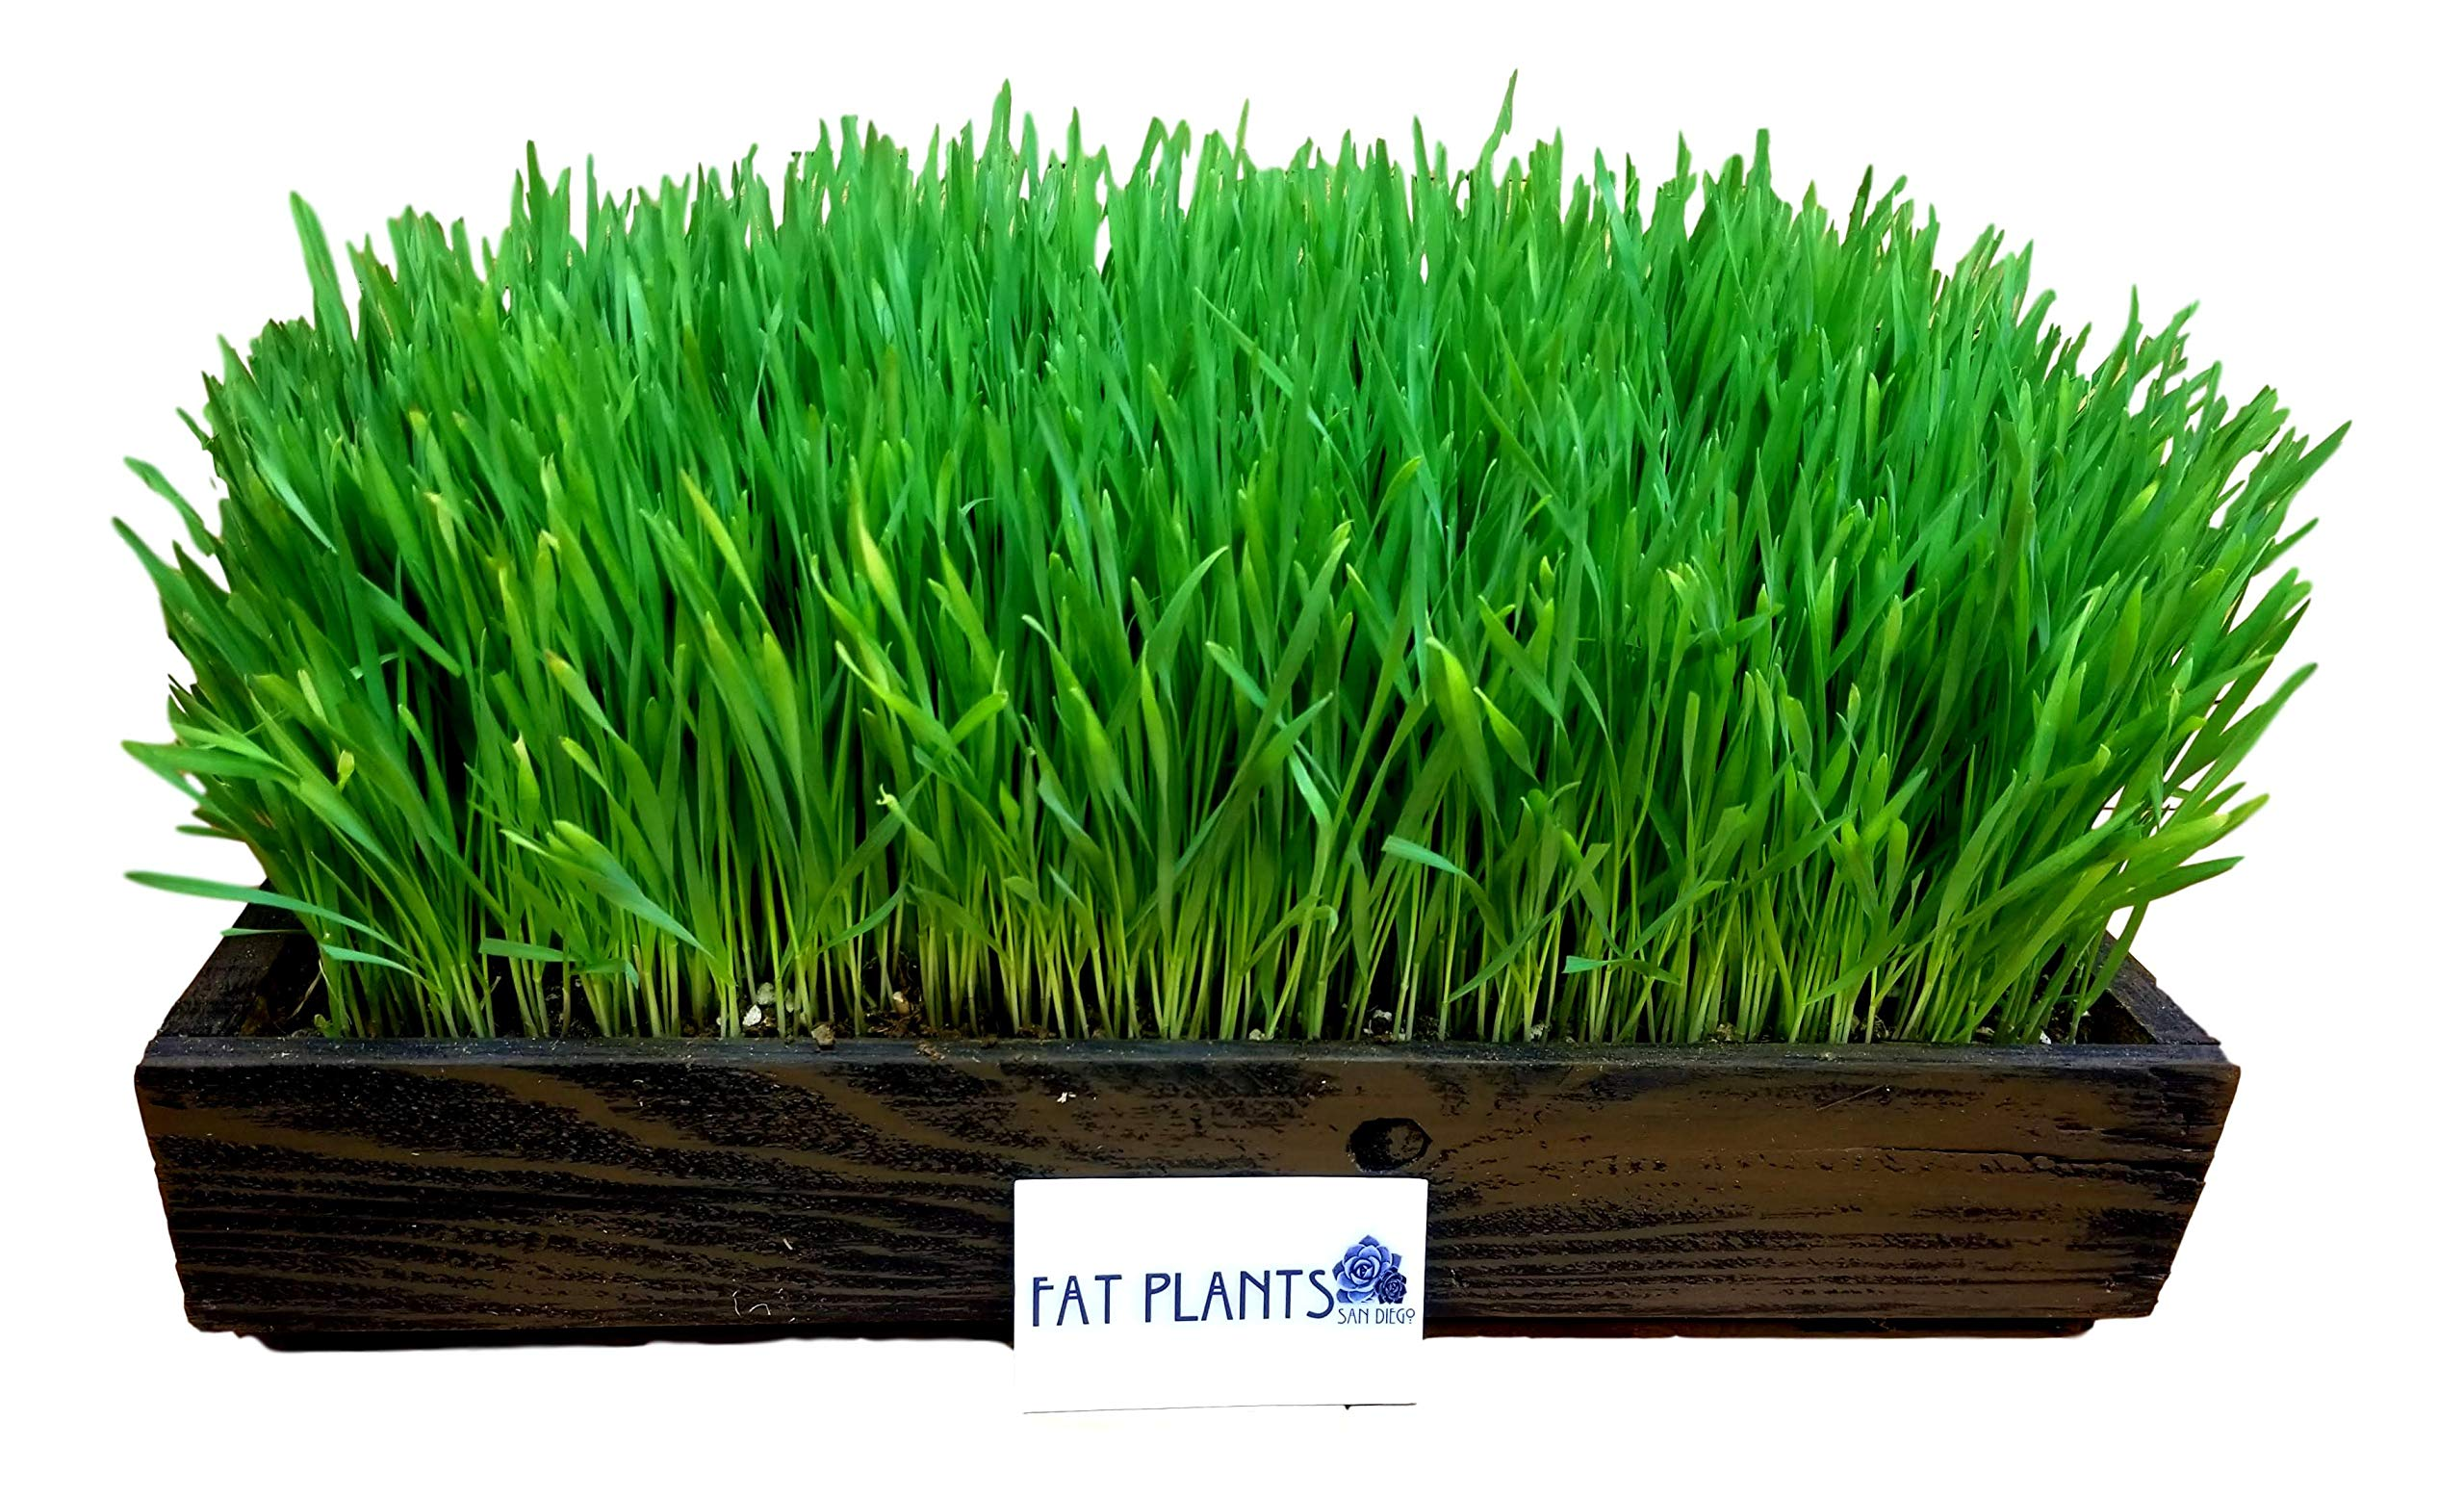 FATPLANTS Complete Organic Wheatgrass Kit in Cedar Planter, Organic Soil, Seeds and Instructions (Large, Wicker Brown) by FATPLANTS